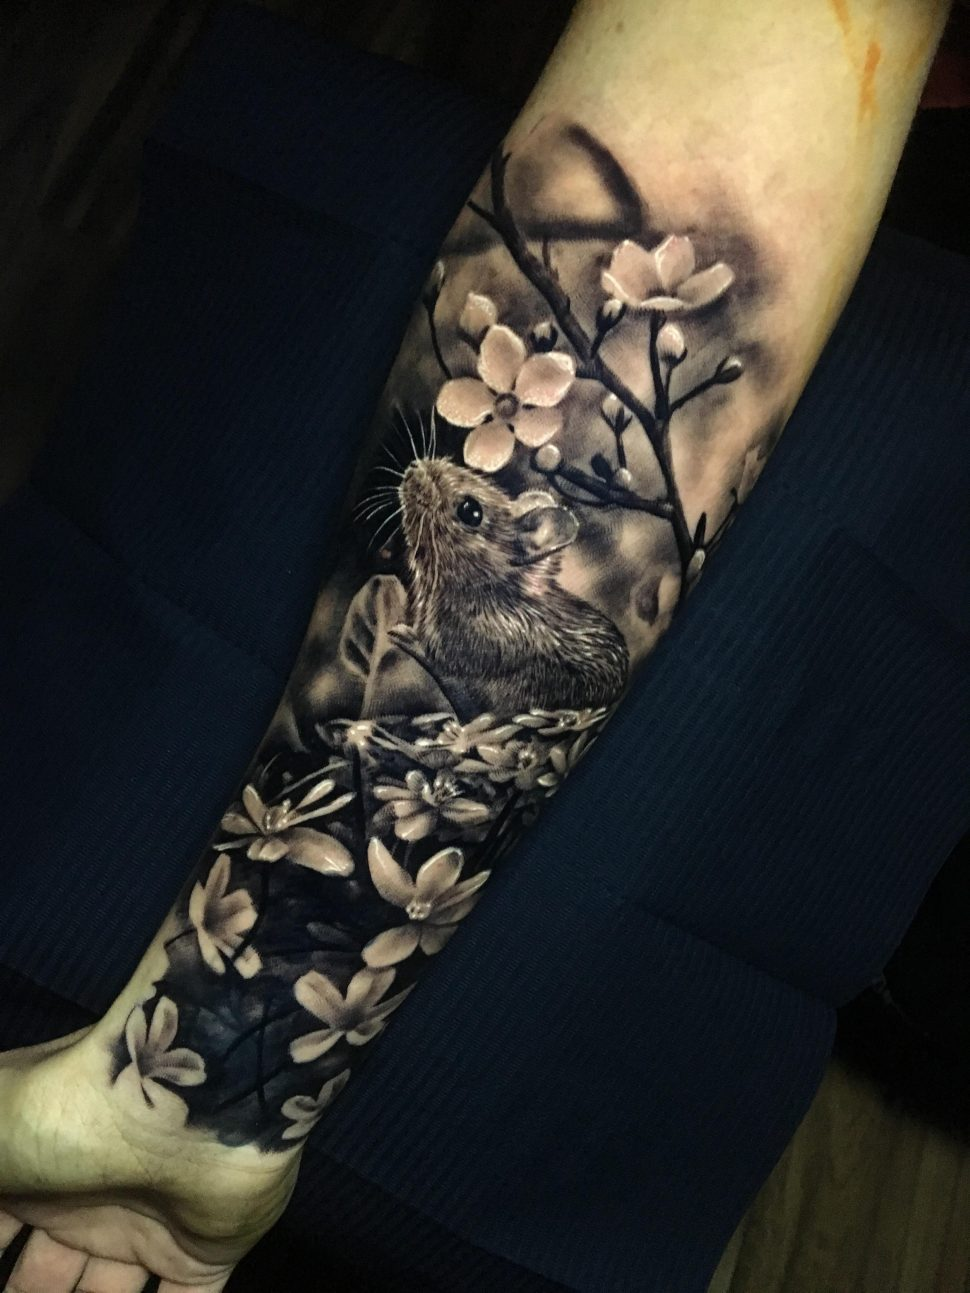 Creative Tattoos Start Of Sleeve With Small Coverup Tattoo Good Cover Up Ideas Stunning Tattoos For Names On Best Cover Up Tattoos Cover Up Tattoo Up Tattoos